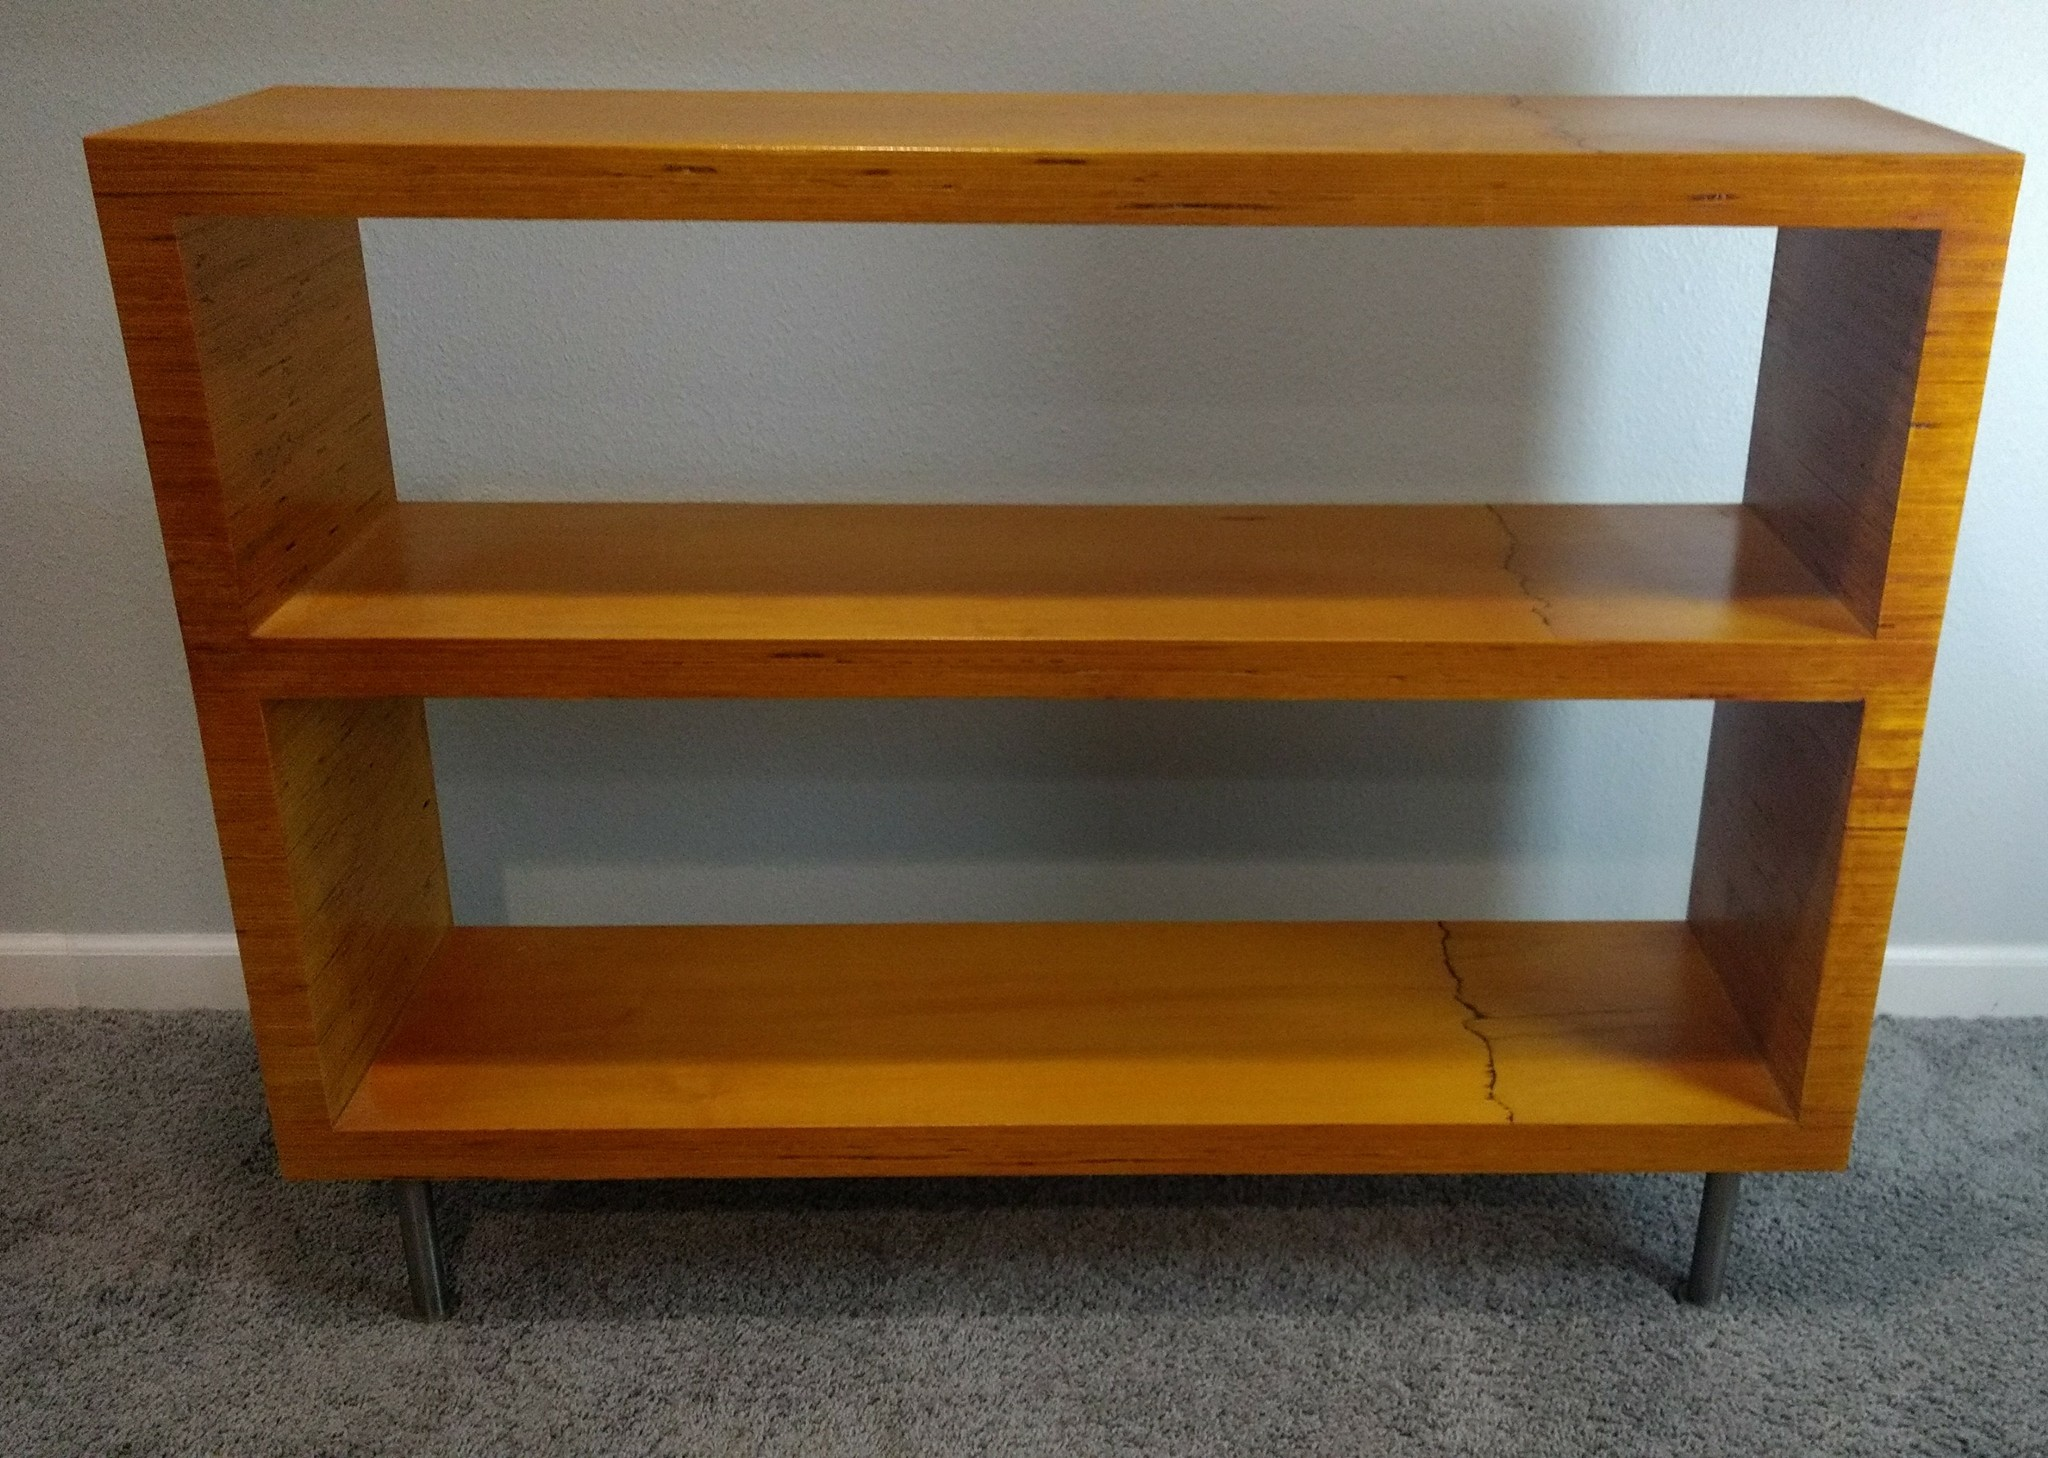 Shelving/Console1